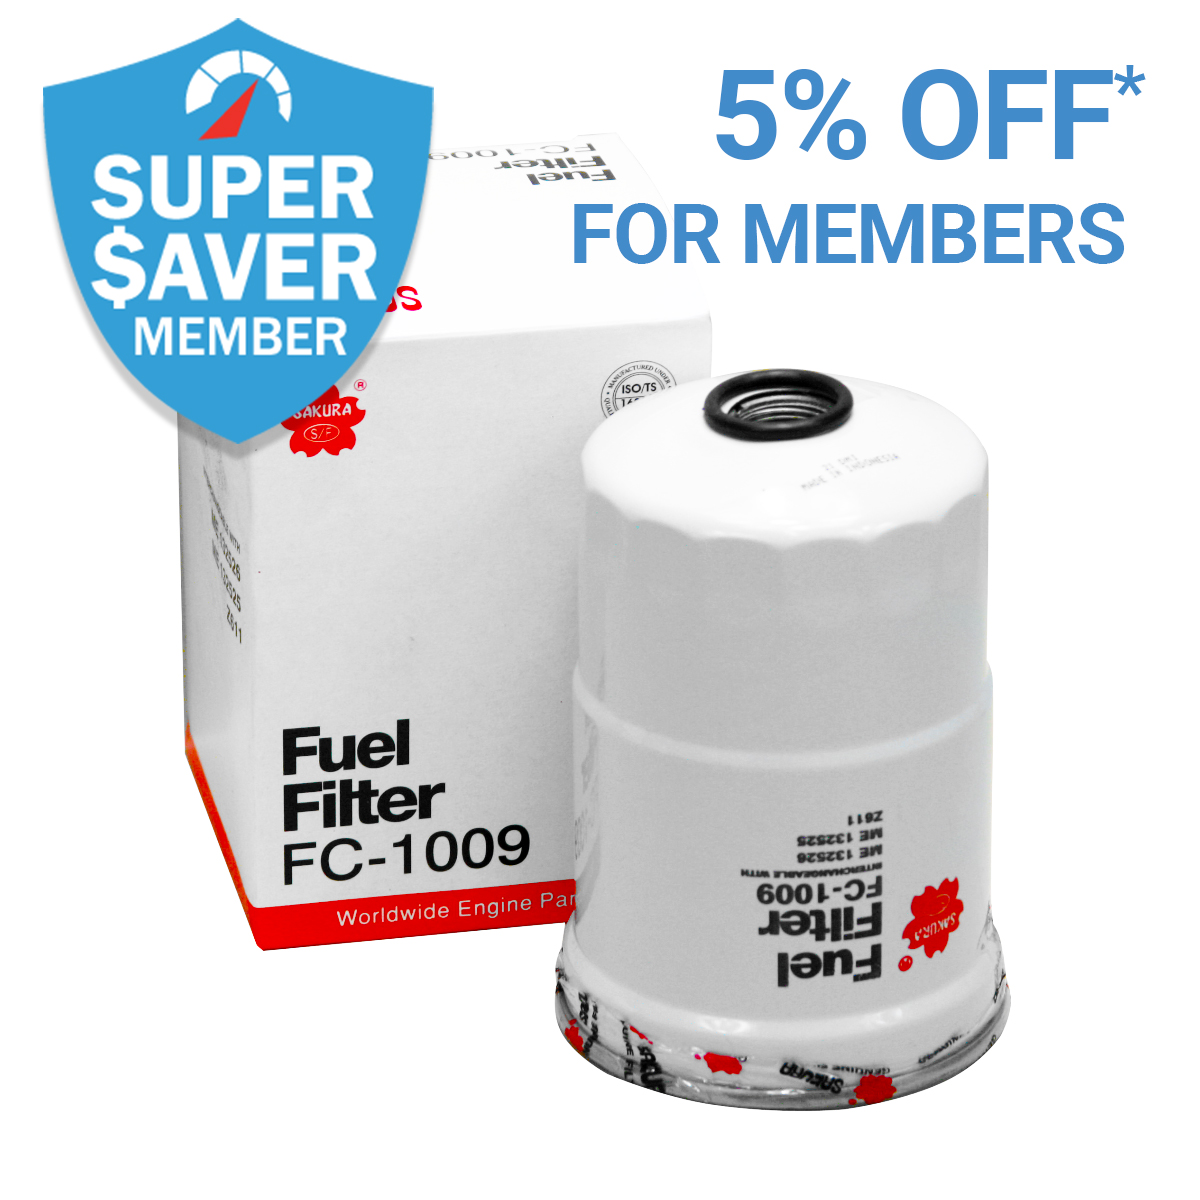 Get 5% Off* Fuel Filters as a Member